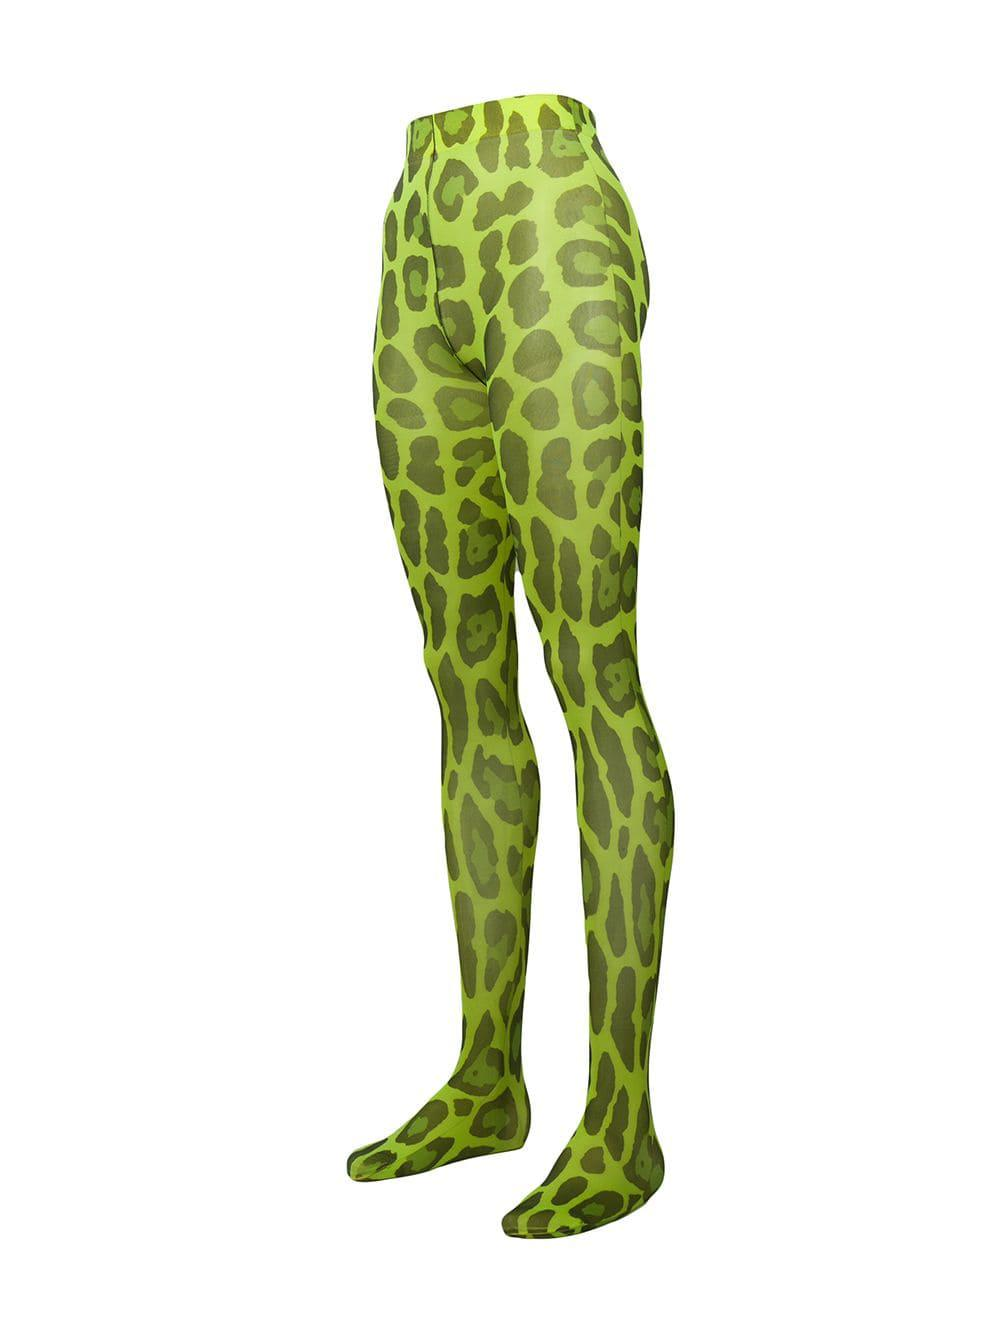 76ee60afaa714 Tom Ford Leopard-print Tights in Green - Lyst